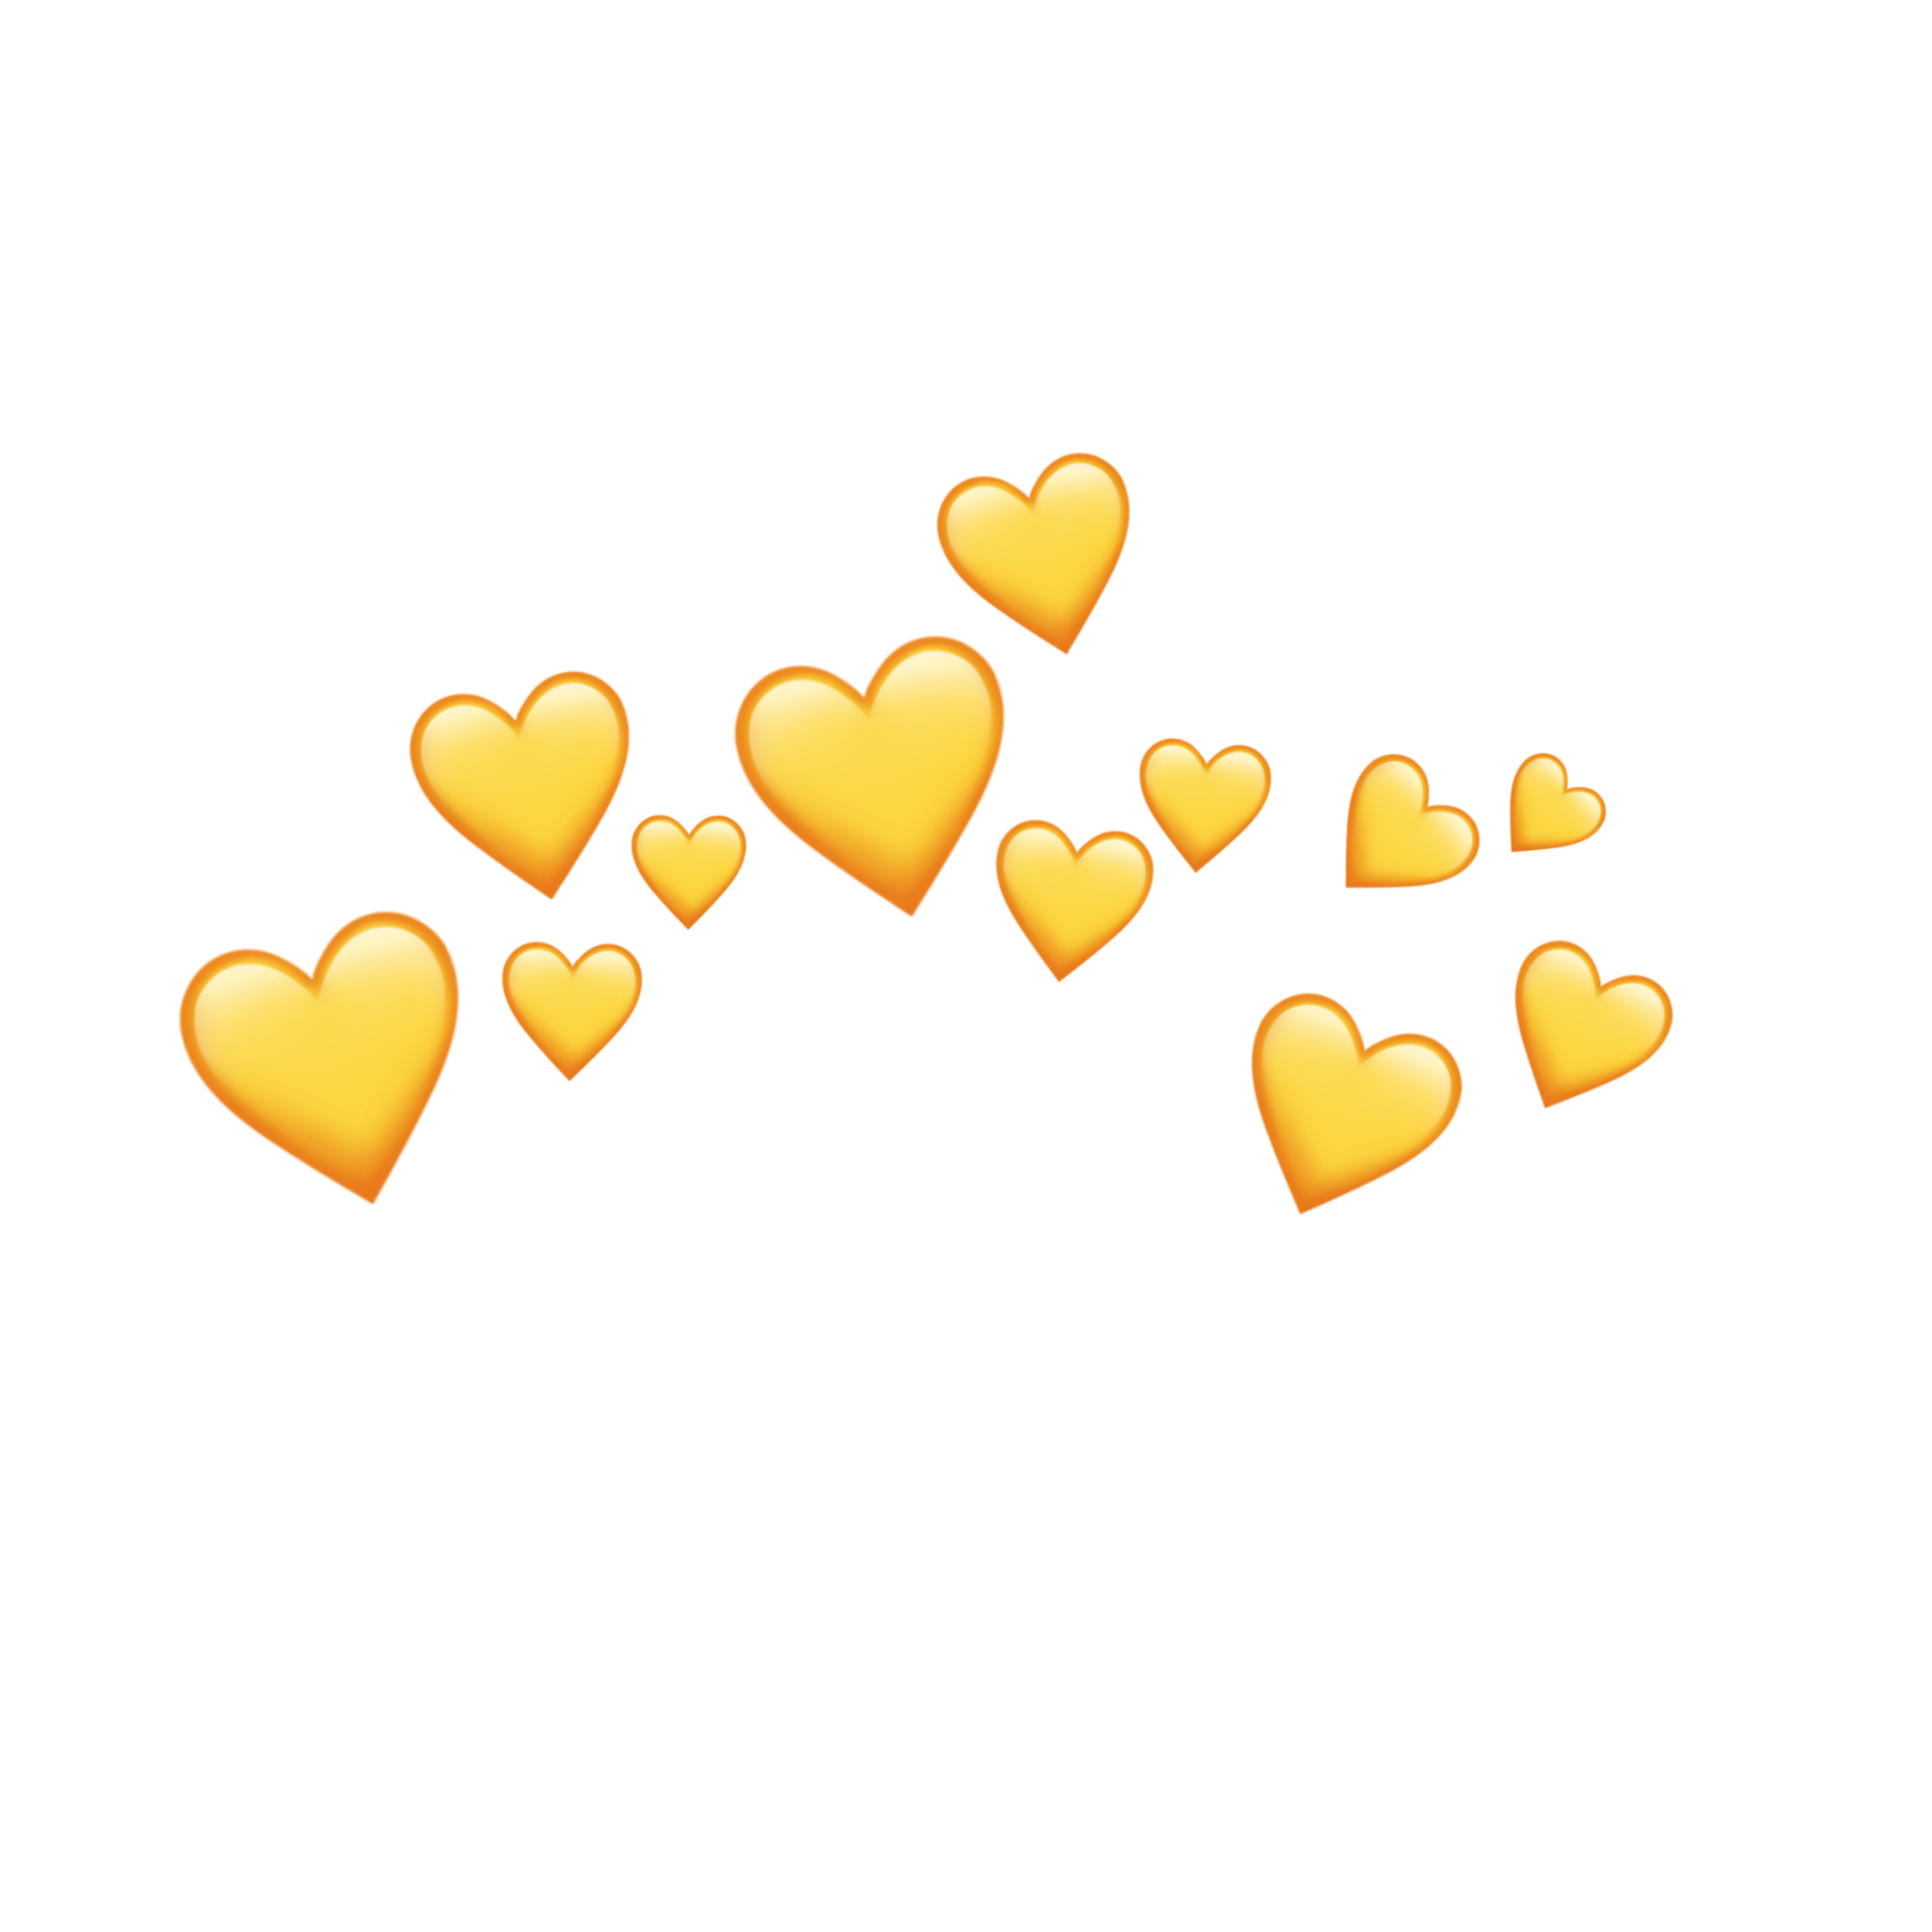 Heart Tumblr Png & Free Heart Tumblr.png Transparent Images.